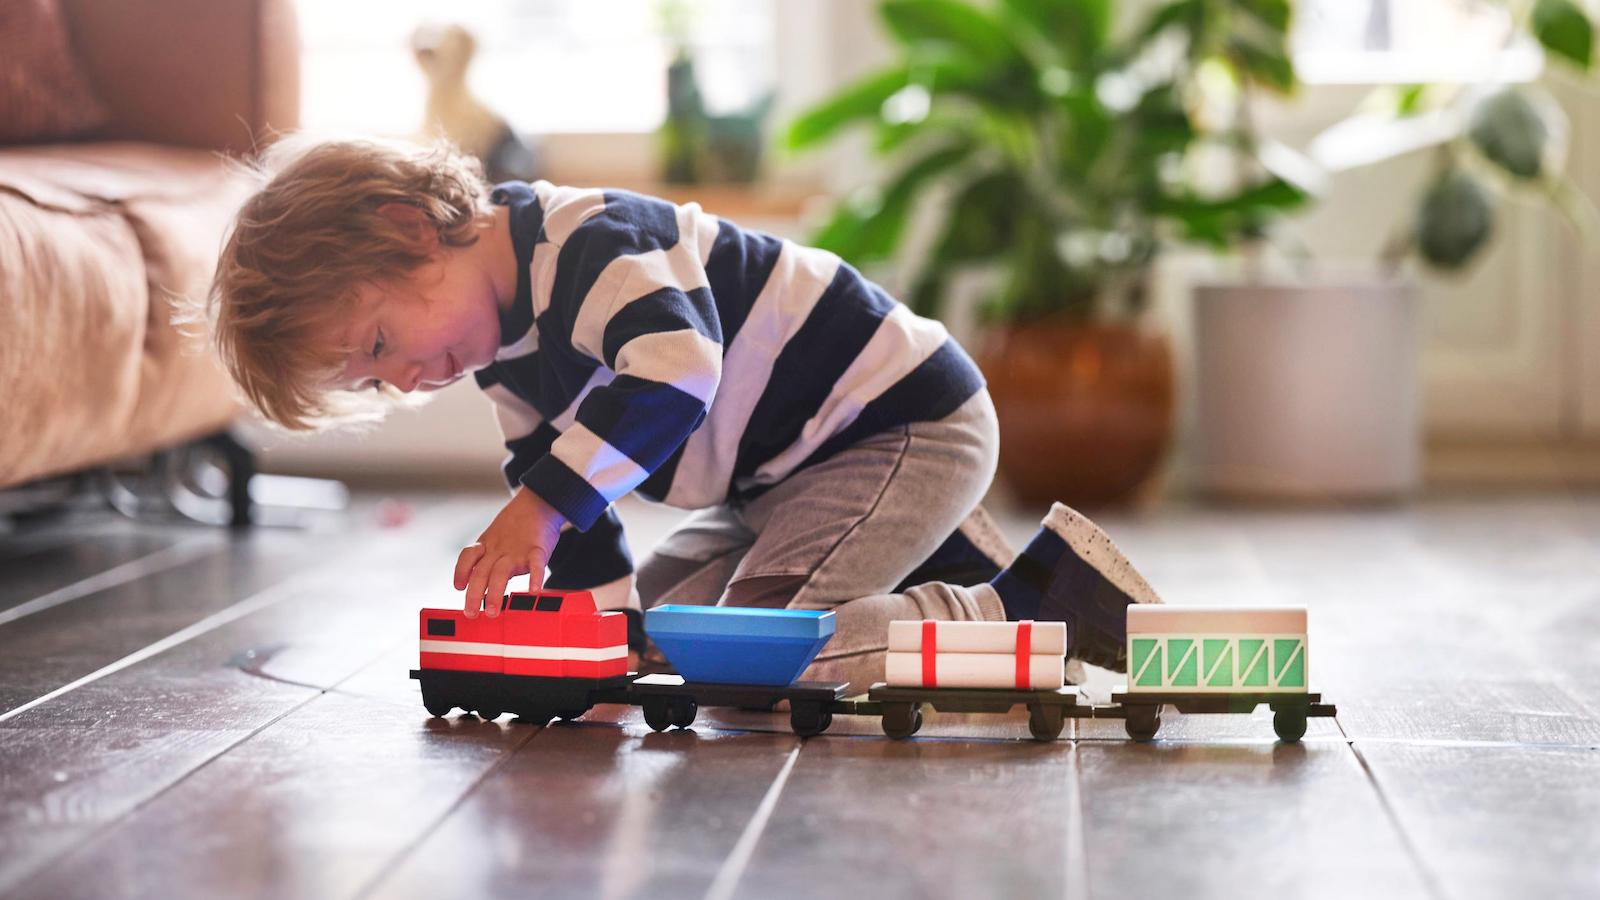 LoCoMoGo Train Coding Toy will teach children ages 4-12 how to code